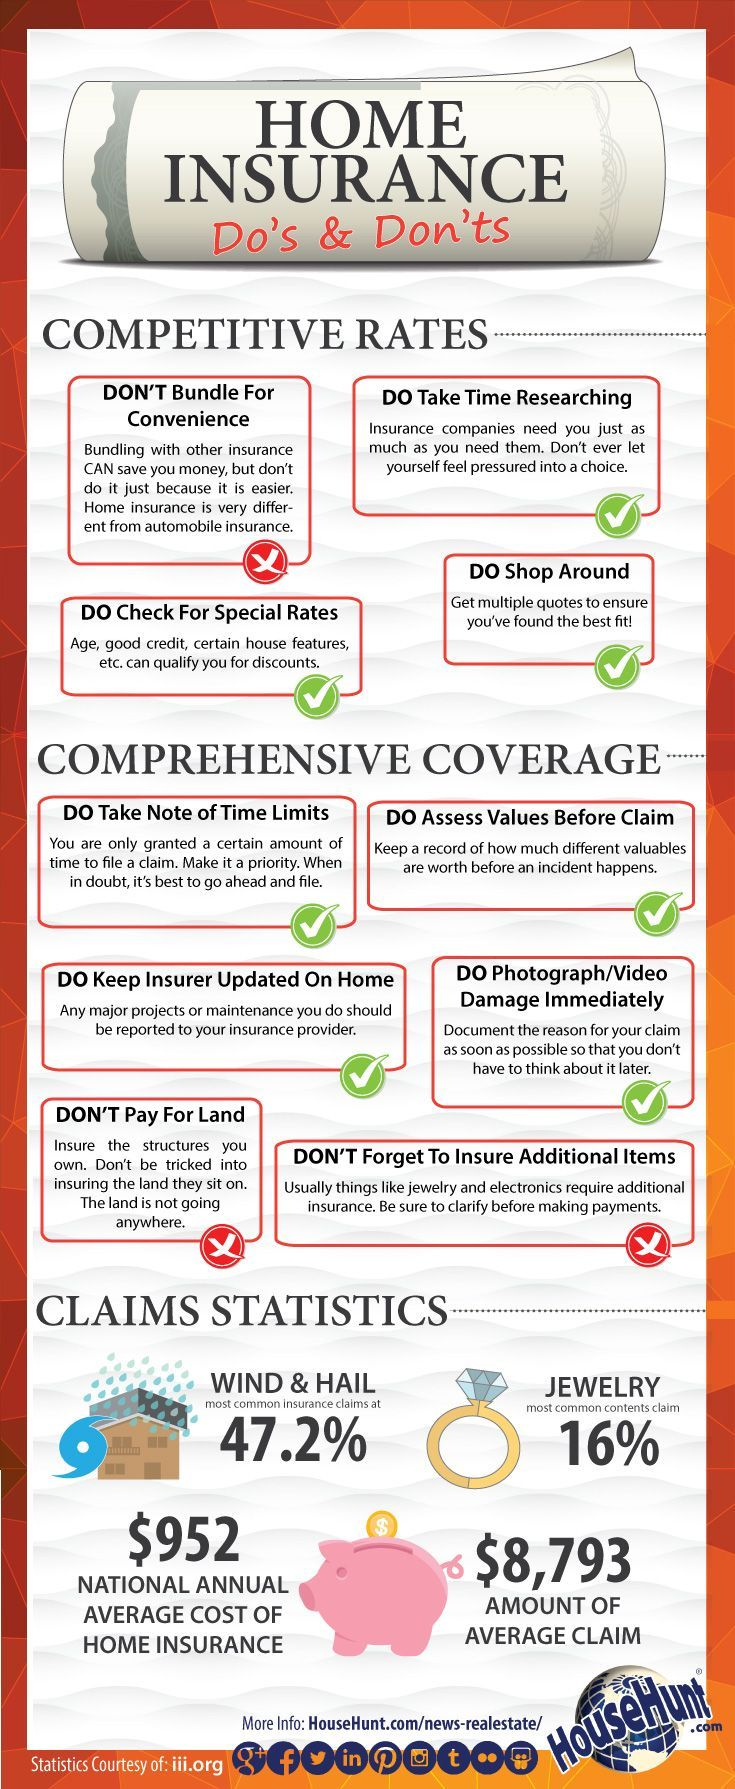 Homeowners Insurance Quote 19 Best Home Insurance Images On Pinterest  Home Insurance Real .